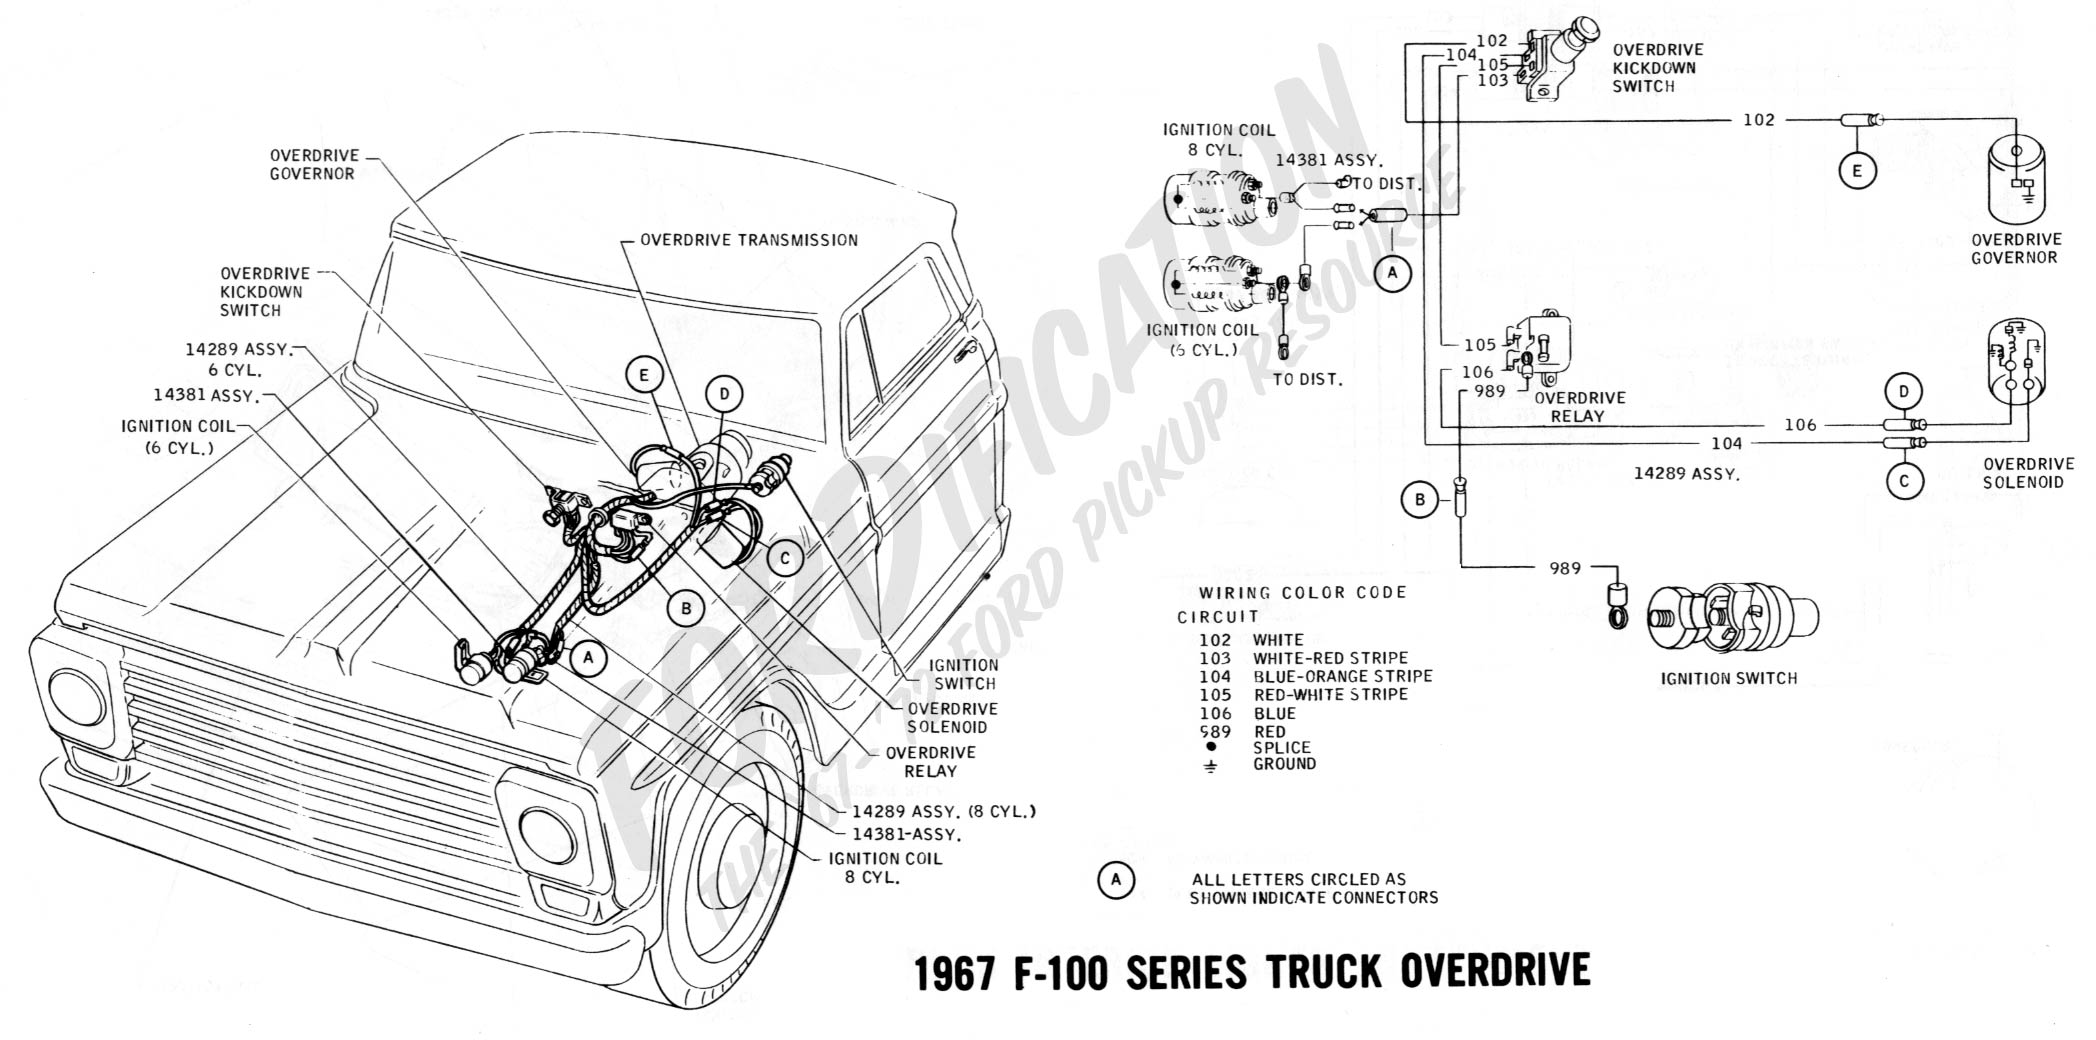 1971 Ford Torino Fuse Box Diagram Archive Of Automotive Wiring 1974 Images Gallery 1968 F100 Data Schema Rh Site De Joueurs Com